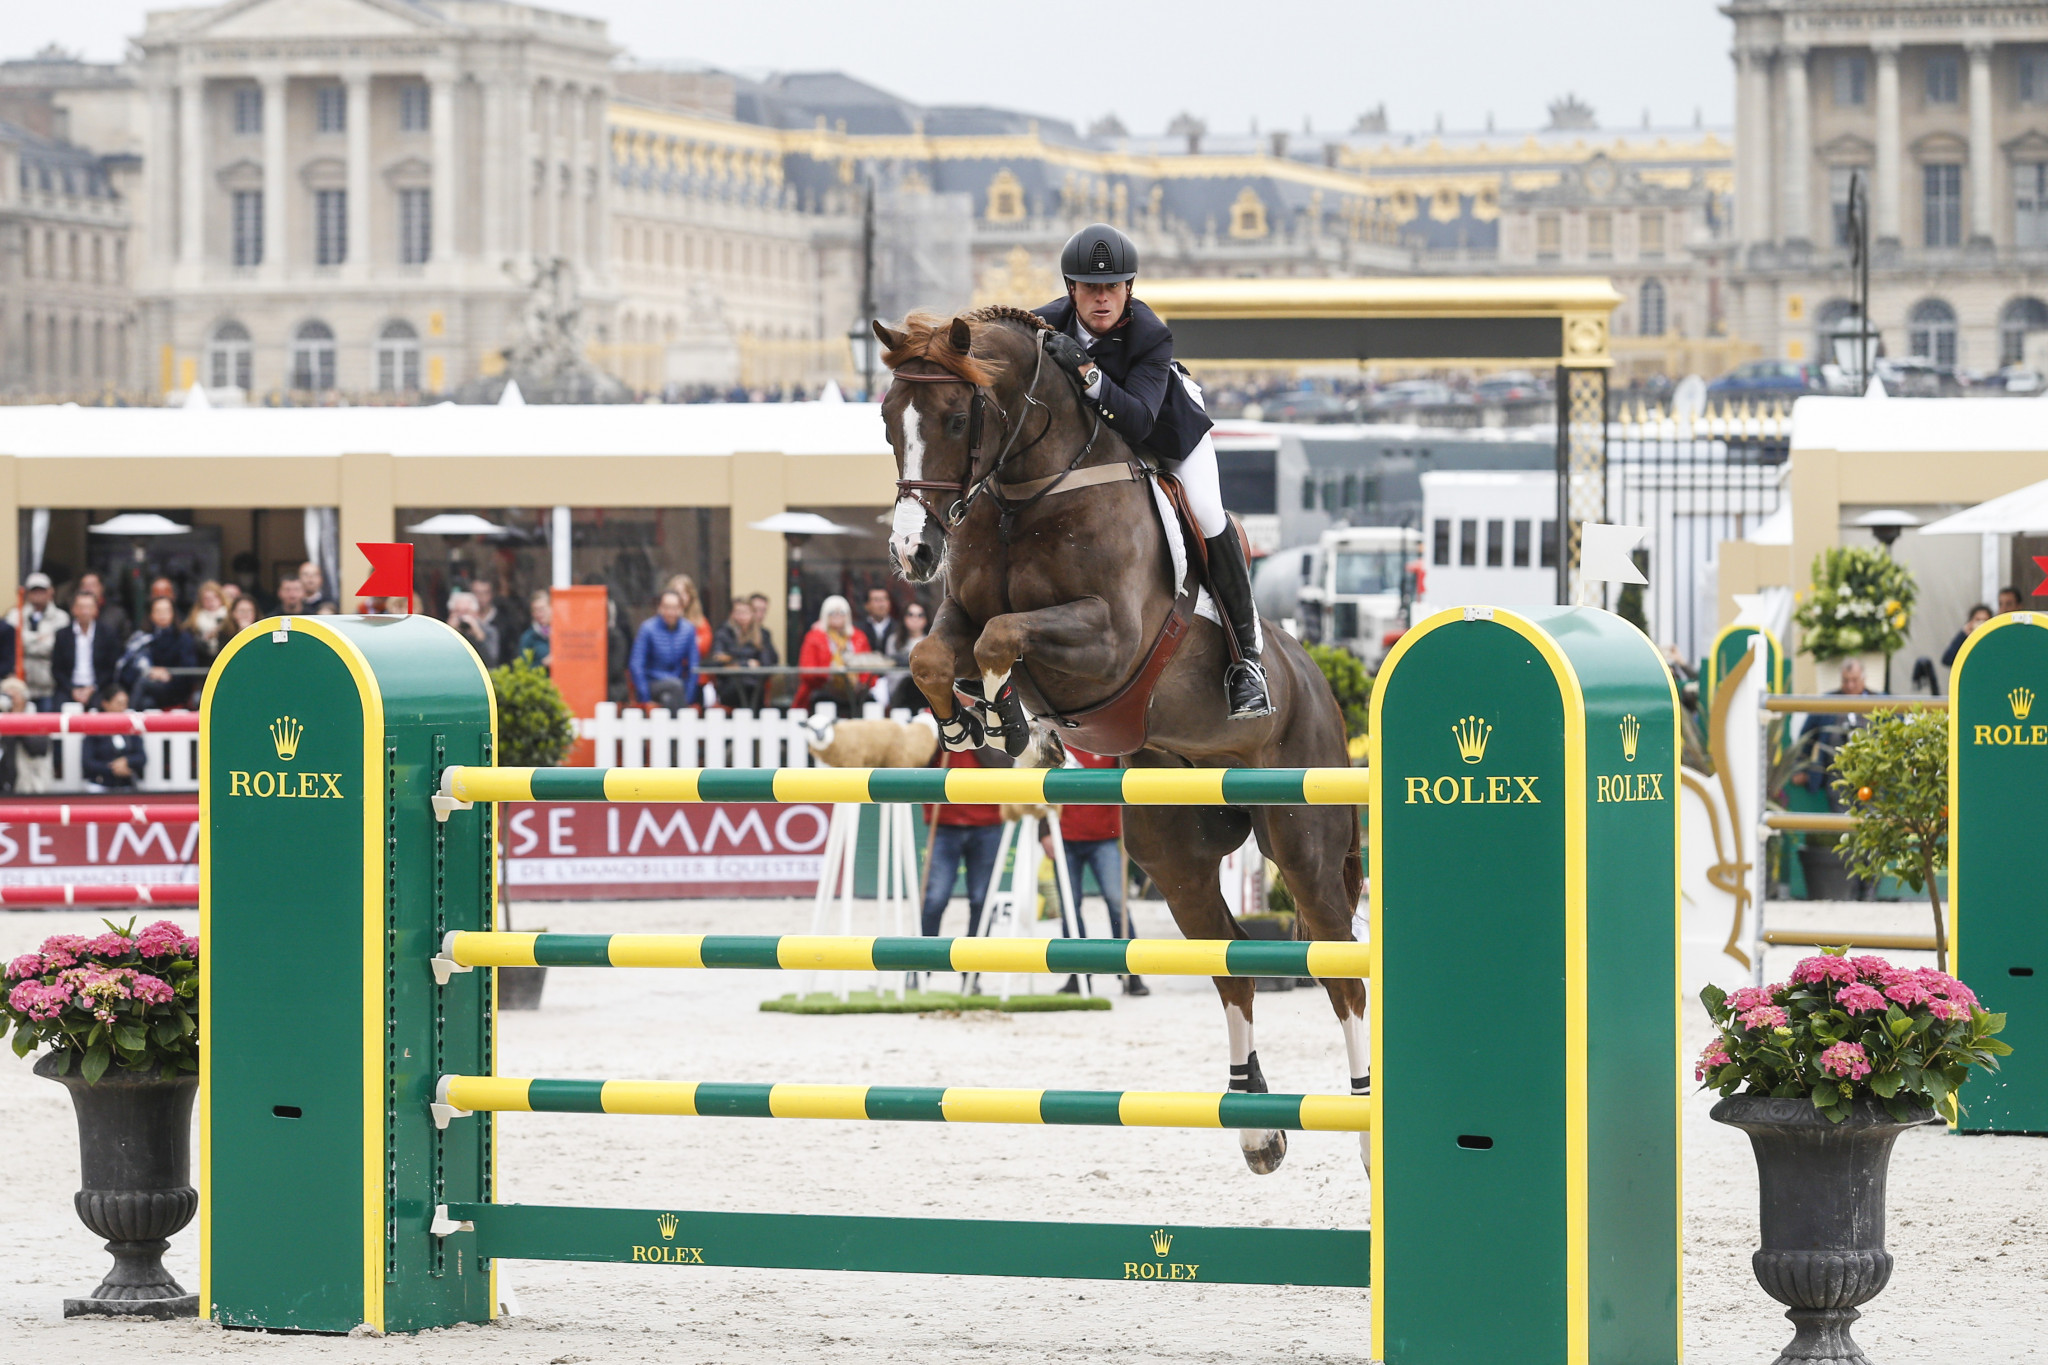 FEI Bureau unanimously supports confirmation of Paris 2024 equestrian events in Versailles